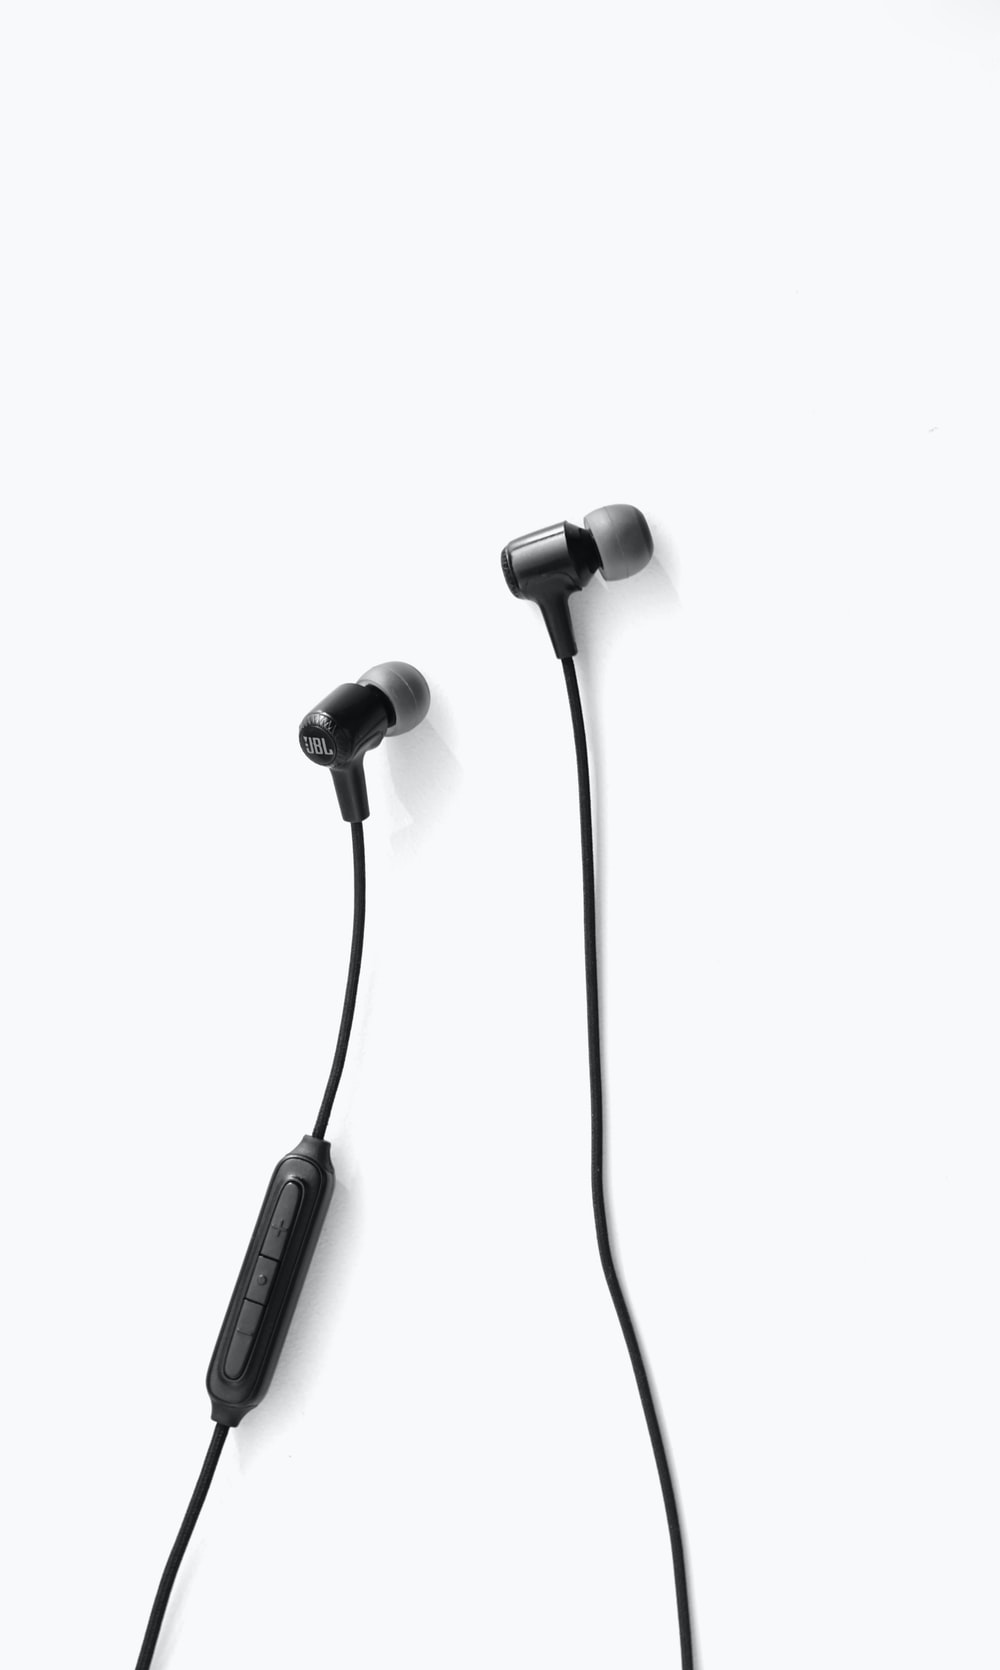 black earbuds on white background